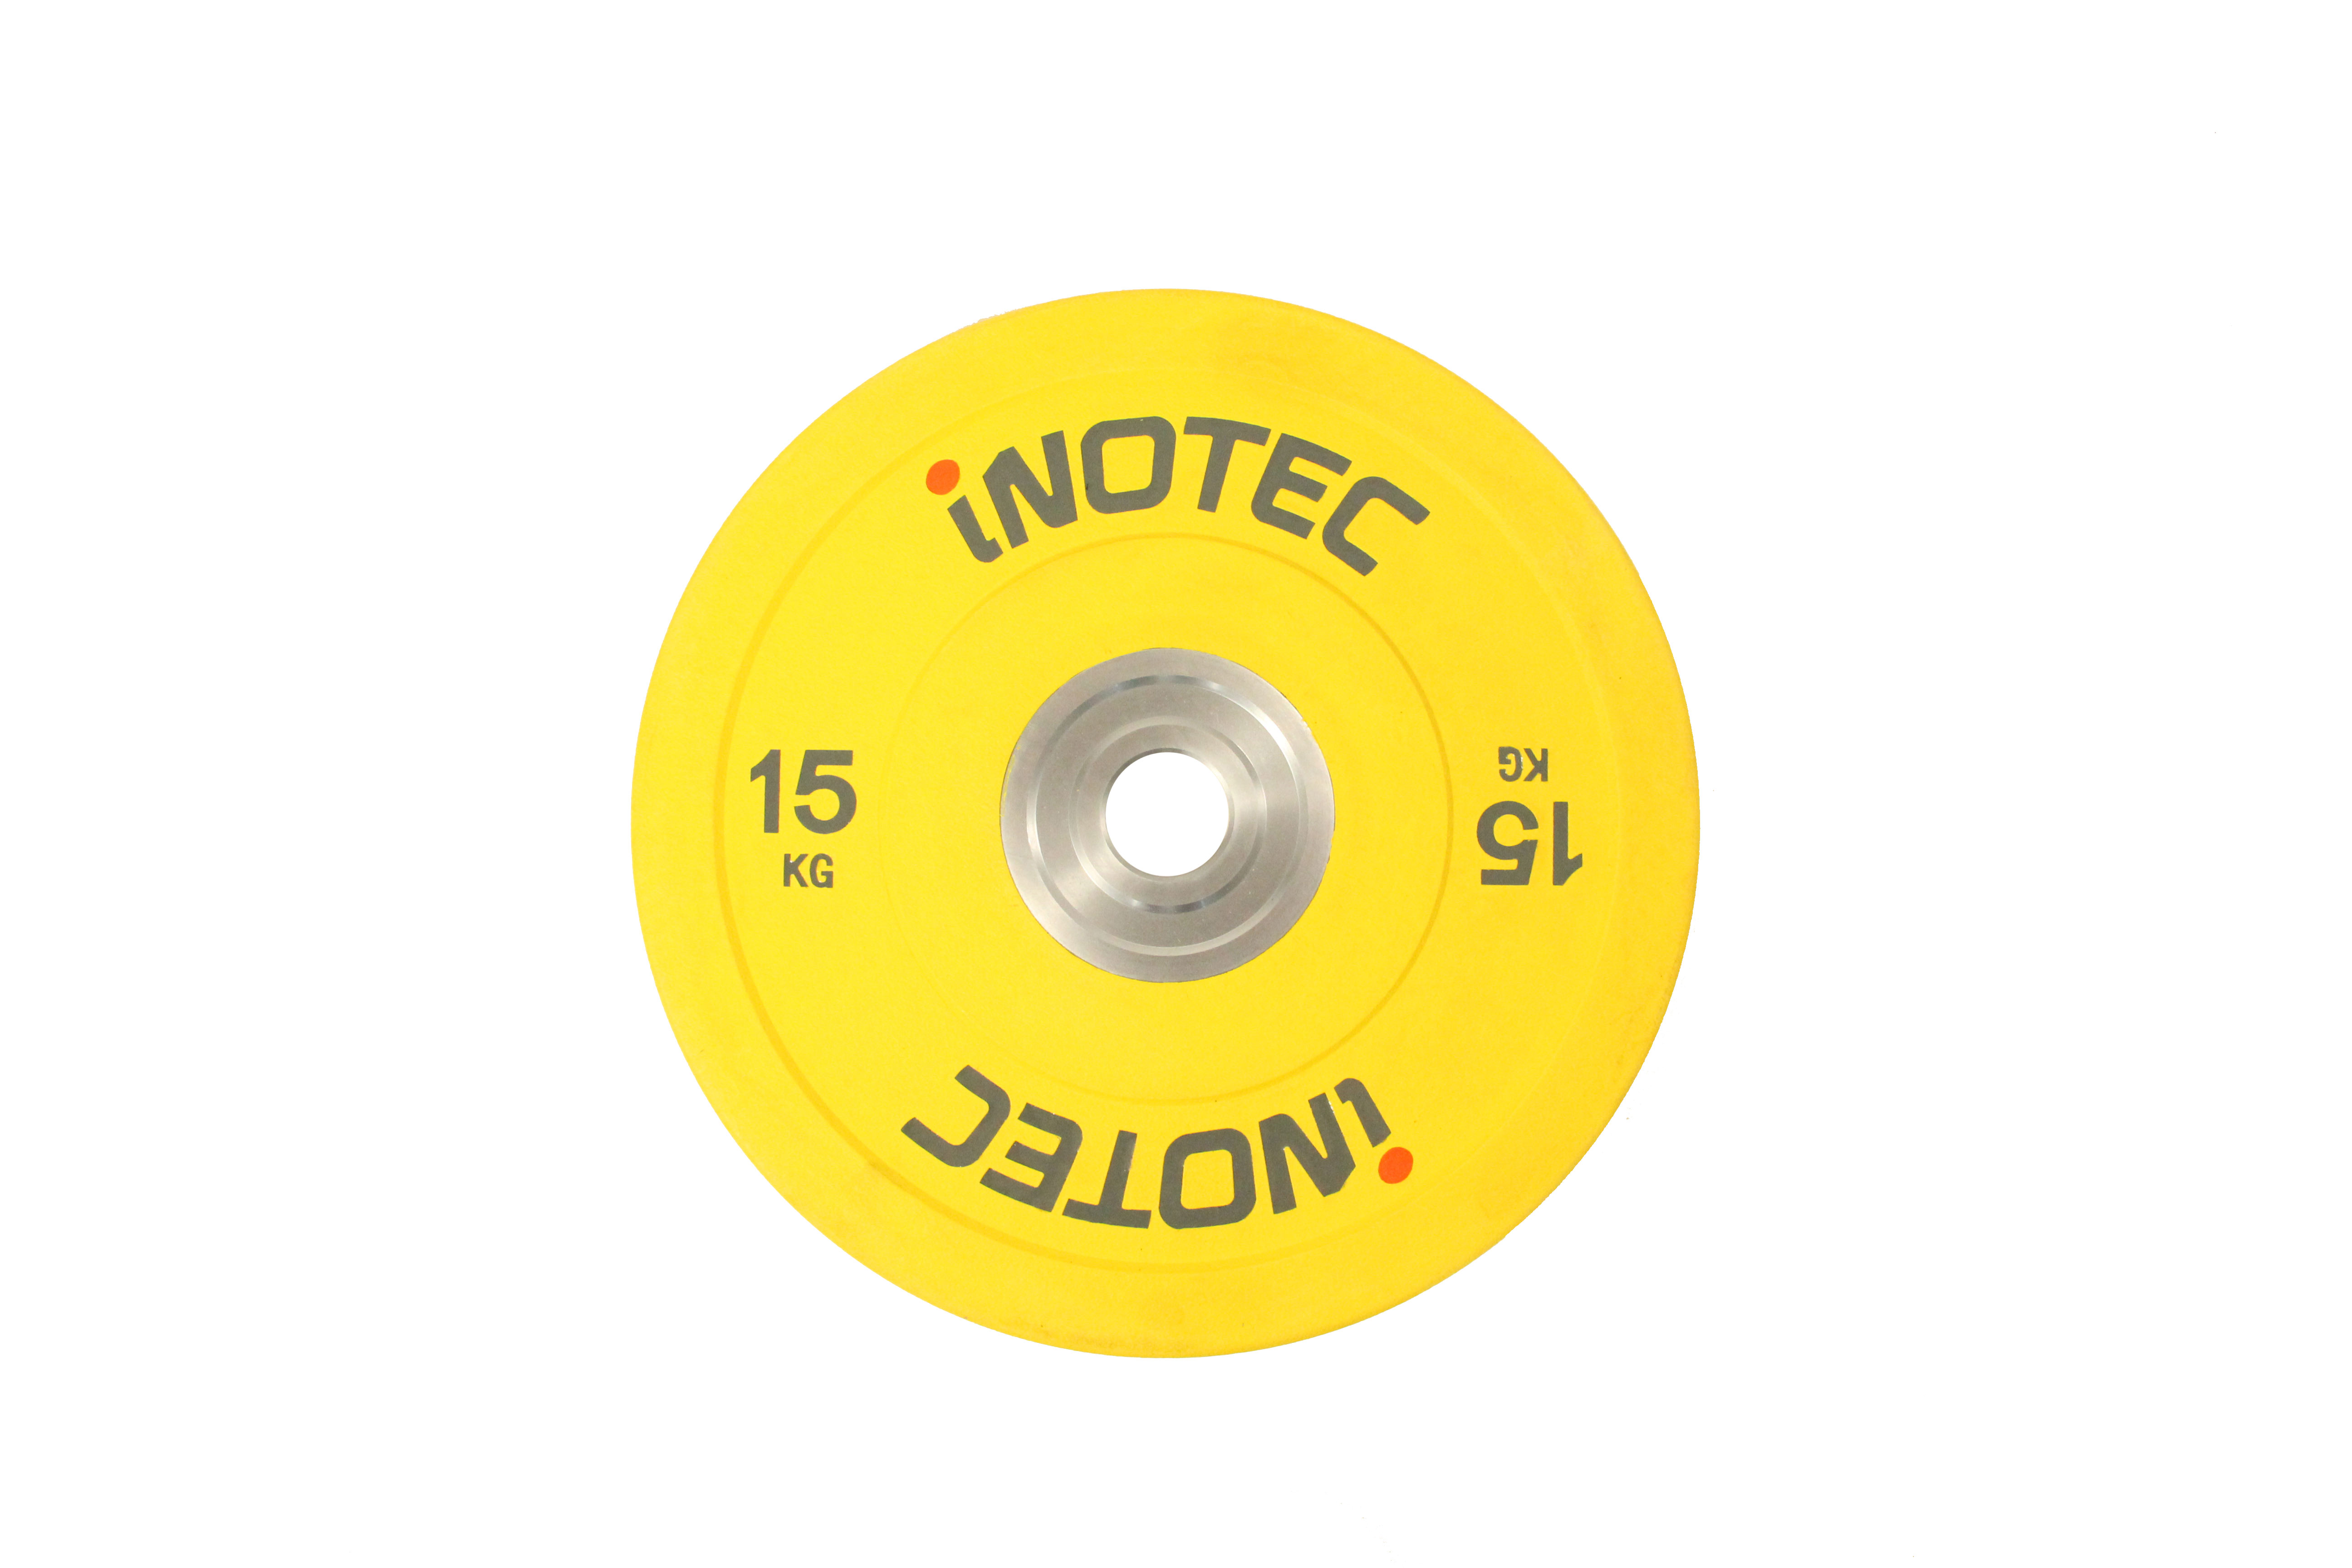 Inotec Competition Bumper Plates 15 kg (Stk.)